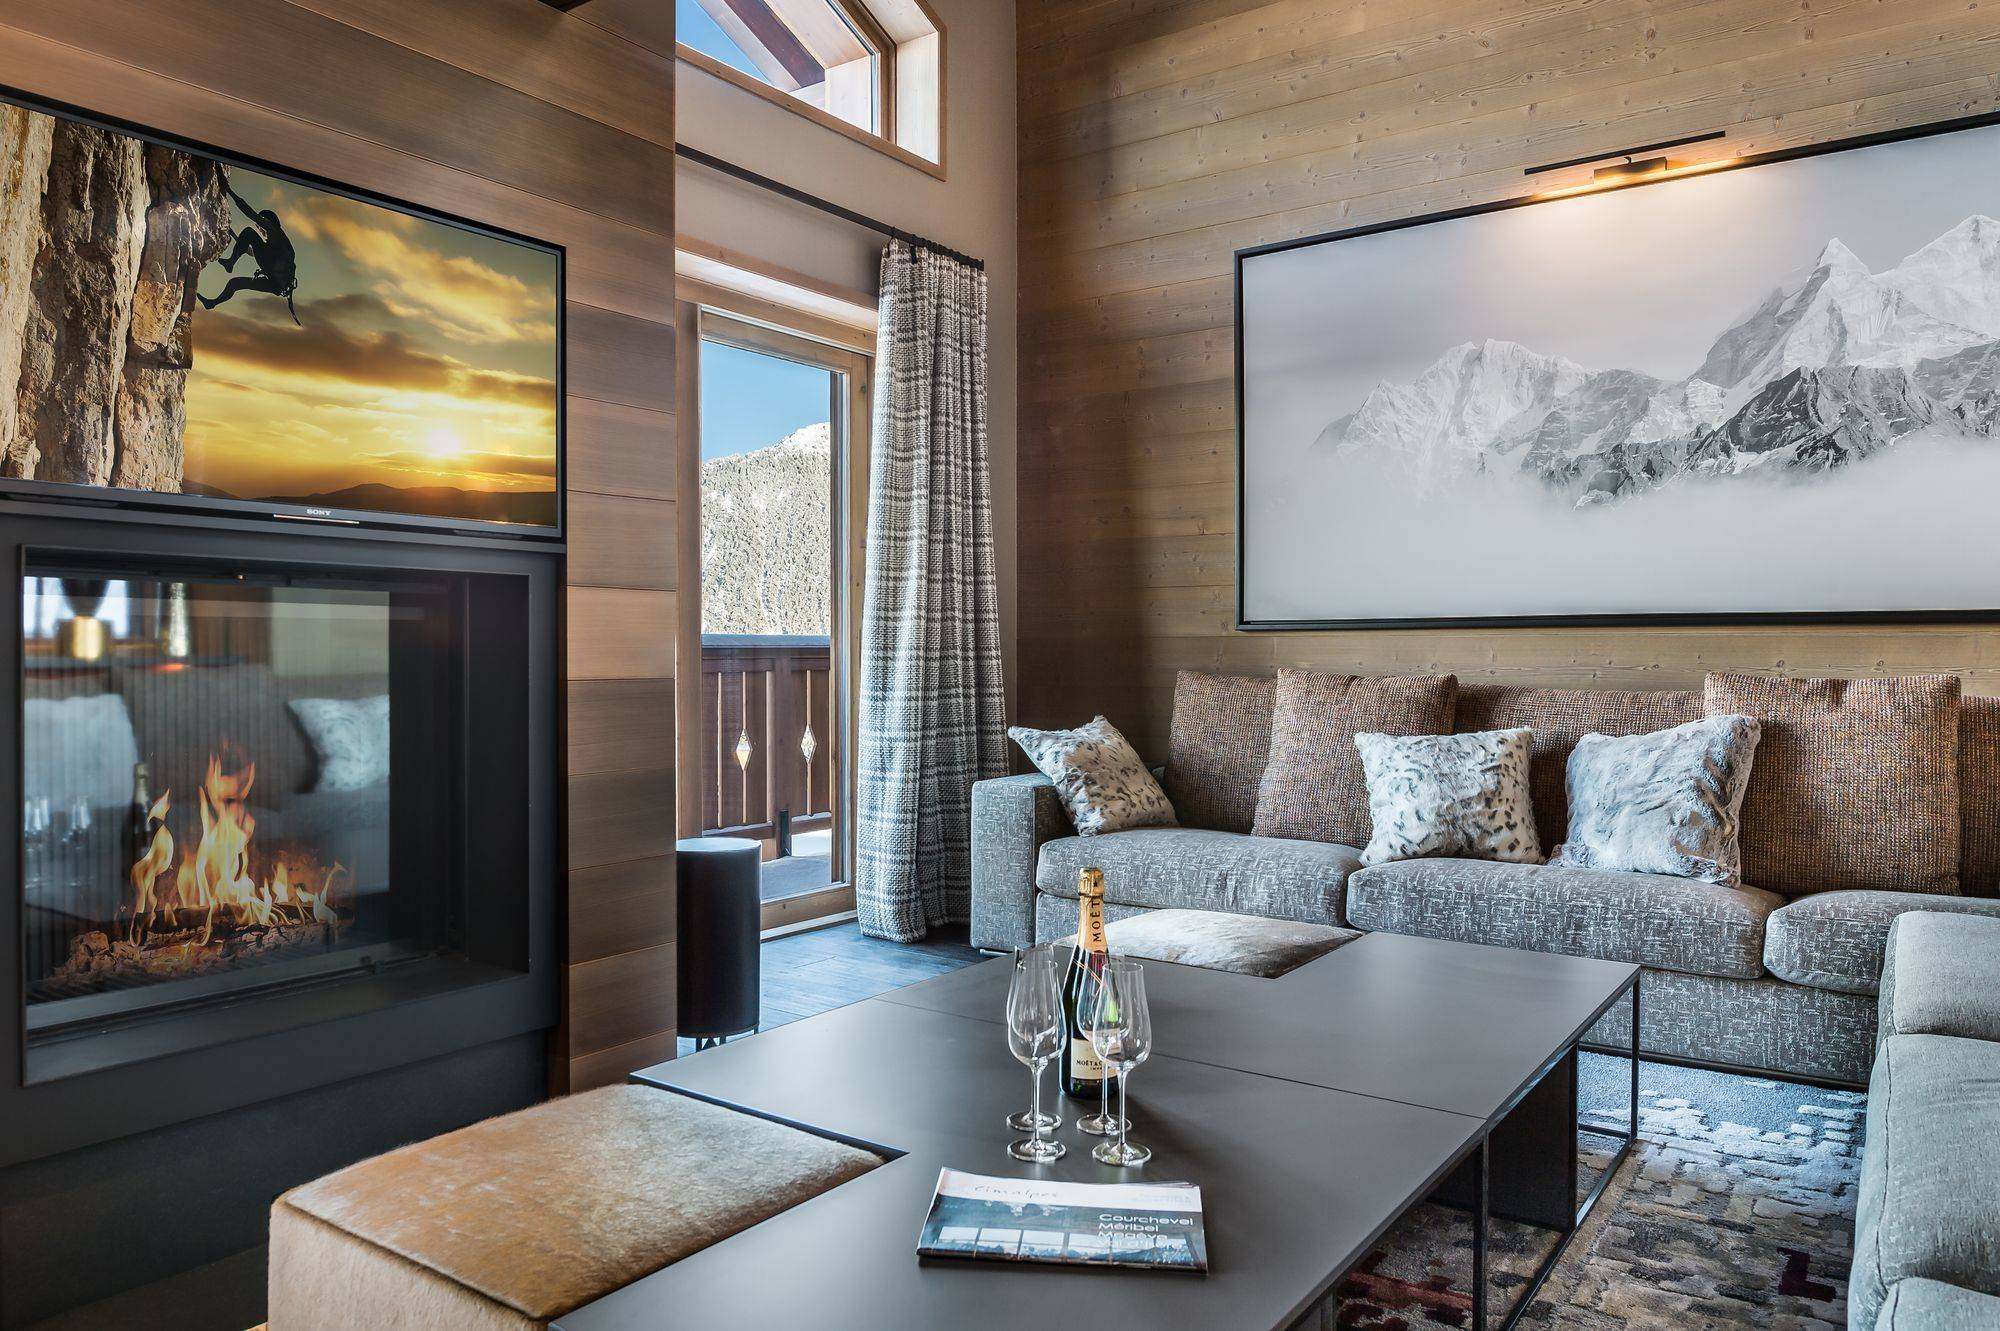 Elixir Accommodation in Courchevel